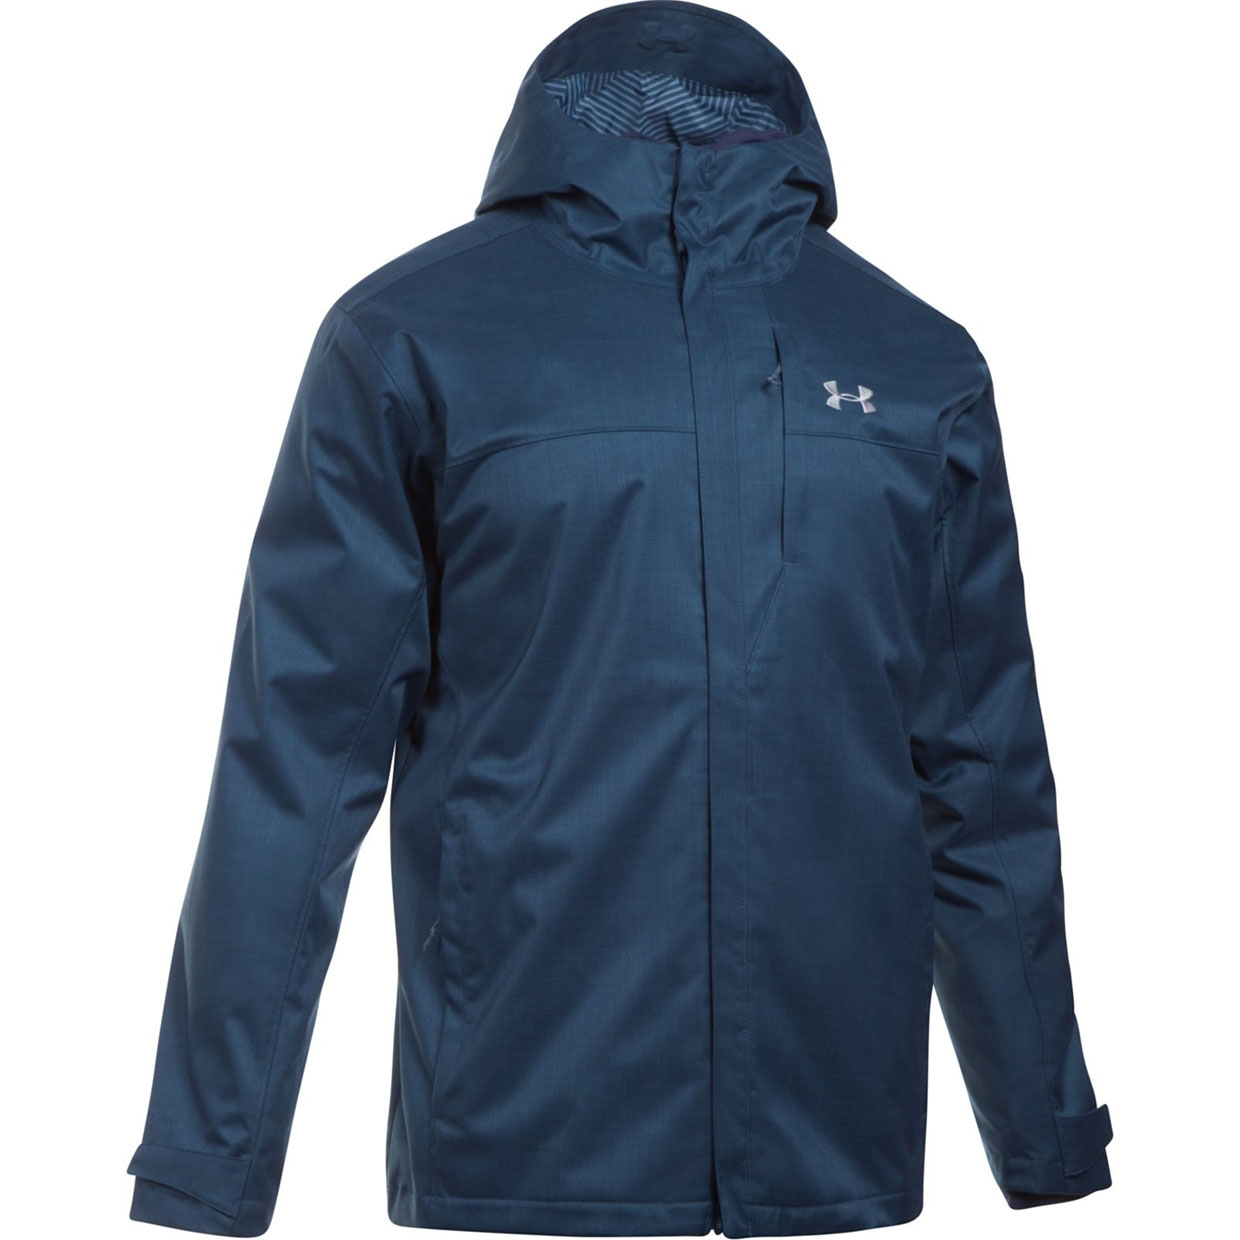 Фото - available from 10.11 Under Armour running jacket men 1300663-918 2017 men s autumn running sports suit